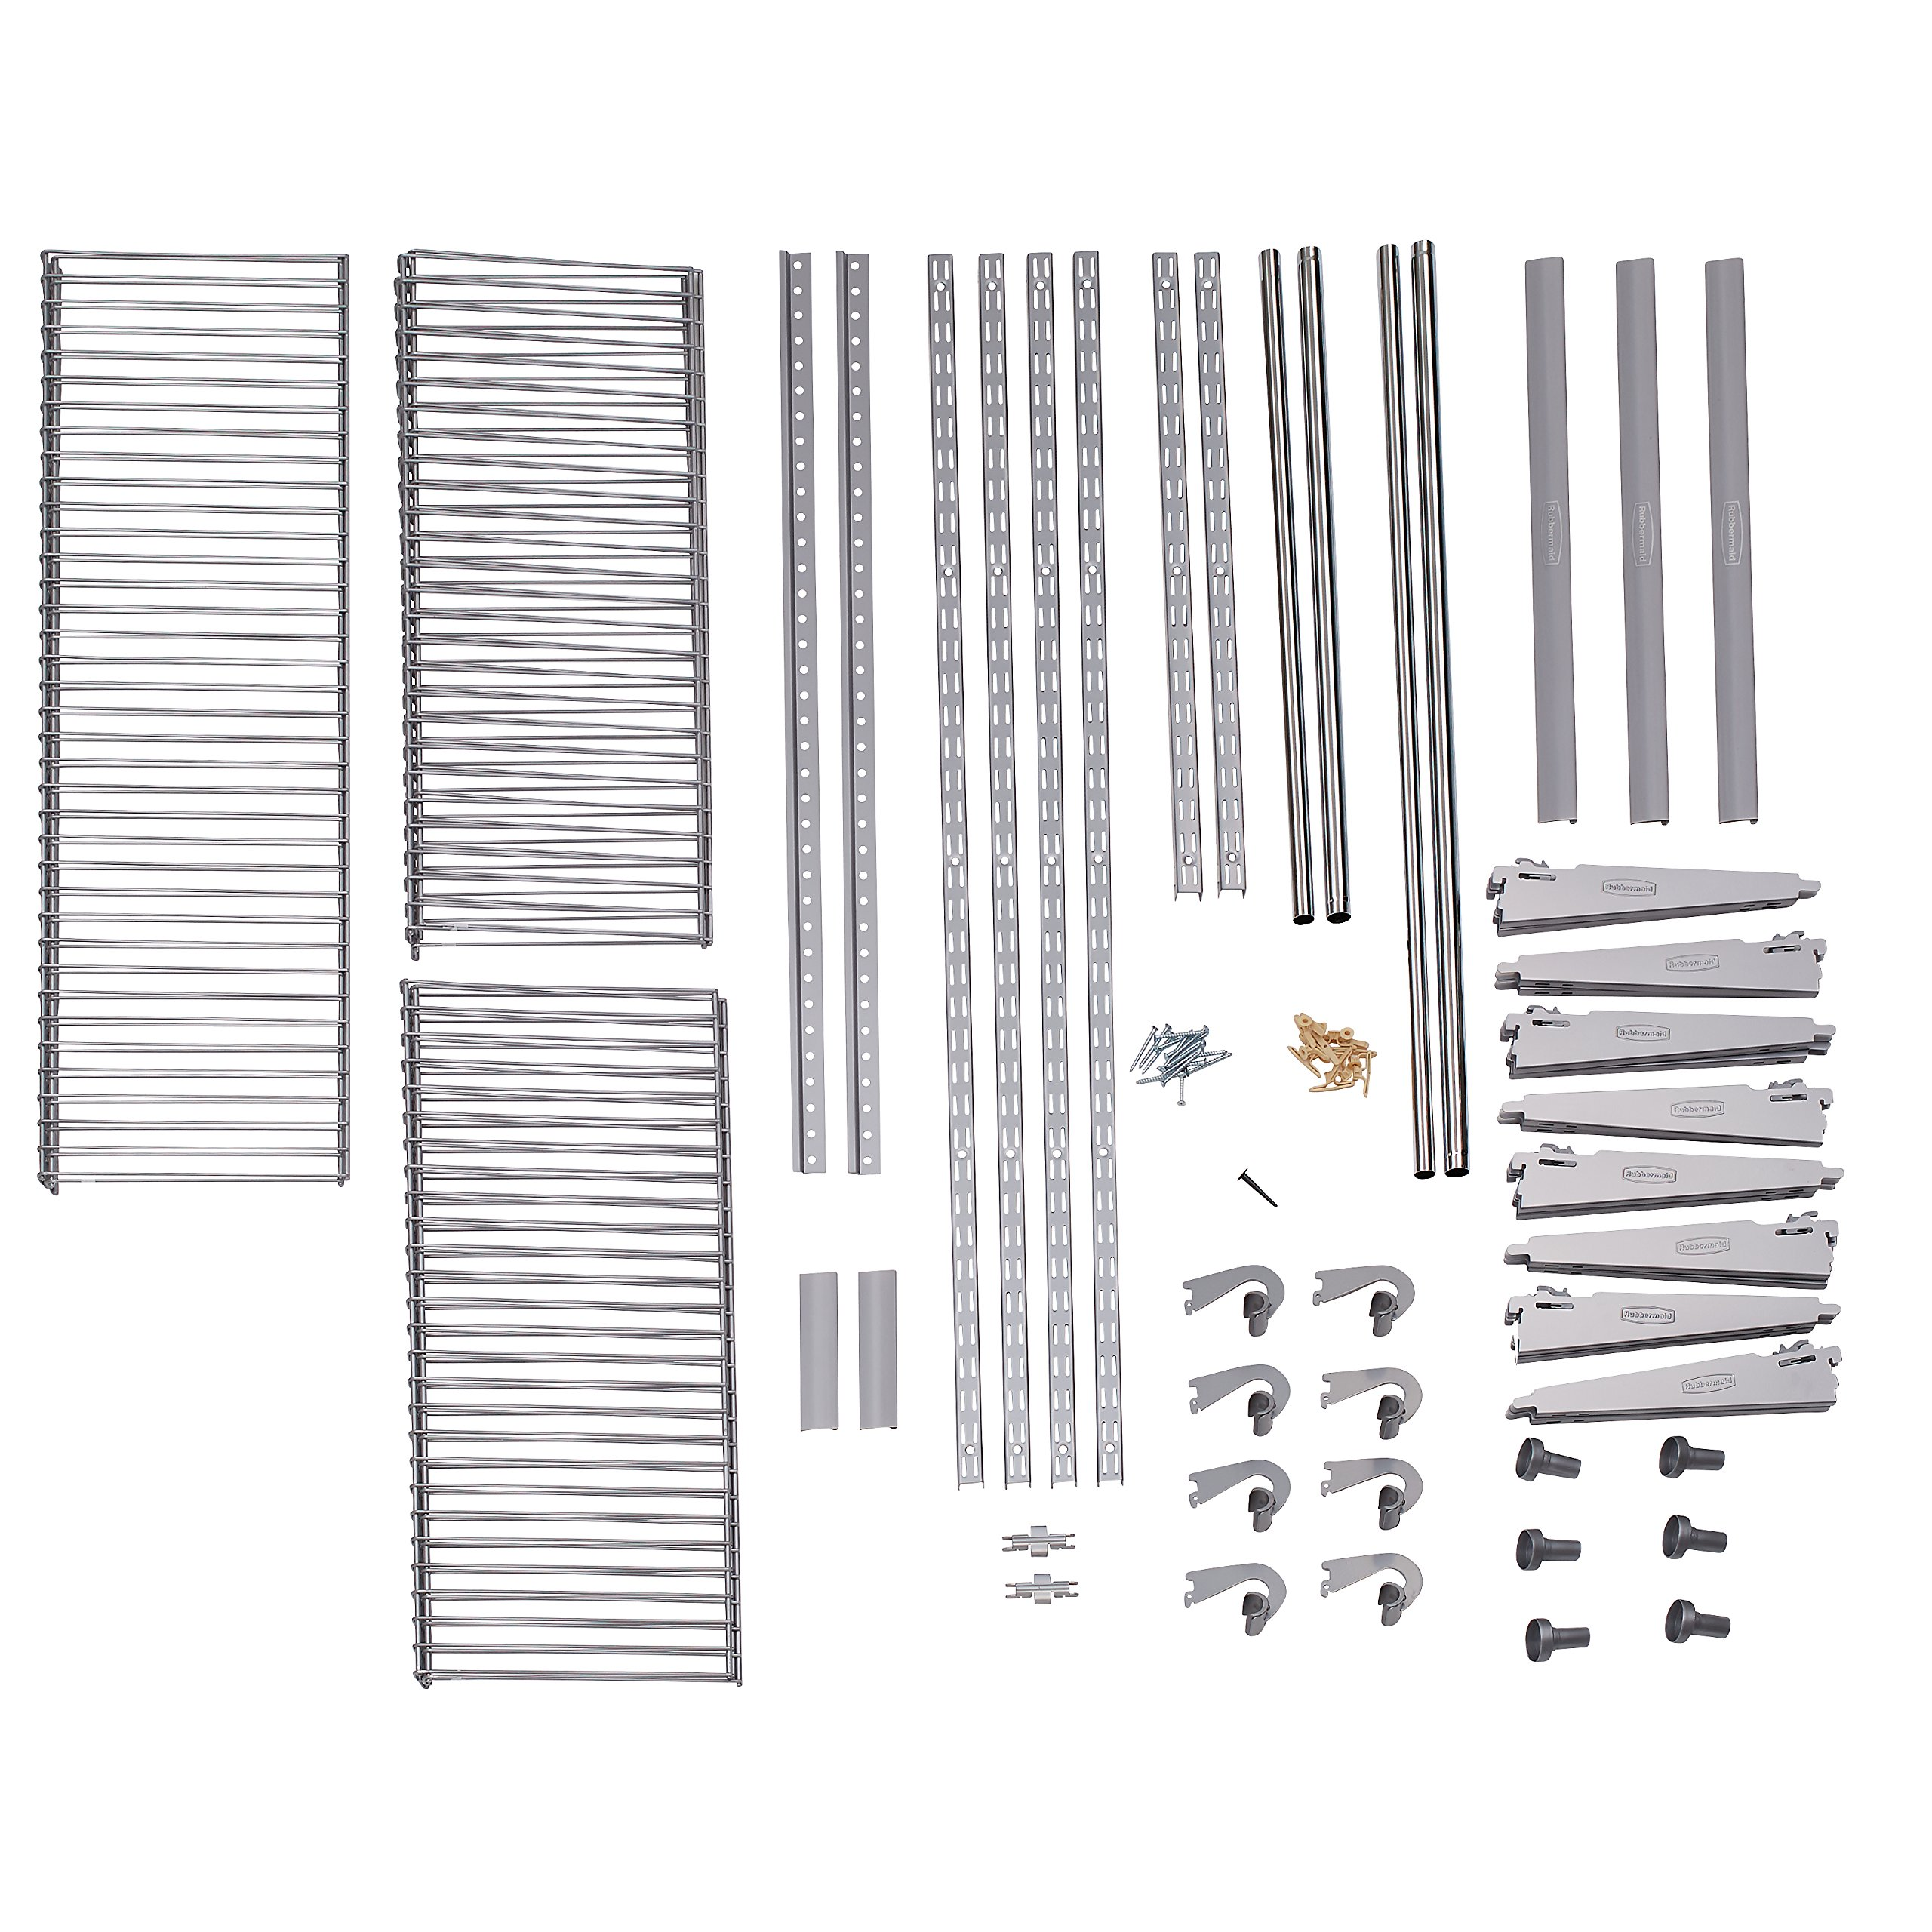 Rubbermaid Configurations 3H8800 3- to 6-Foot Deluxe Custom Closet Kit by Rubbermaid